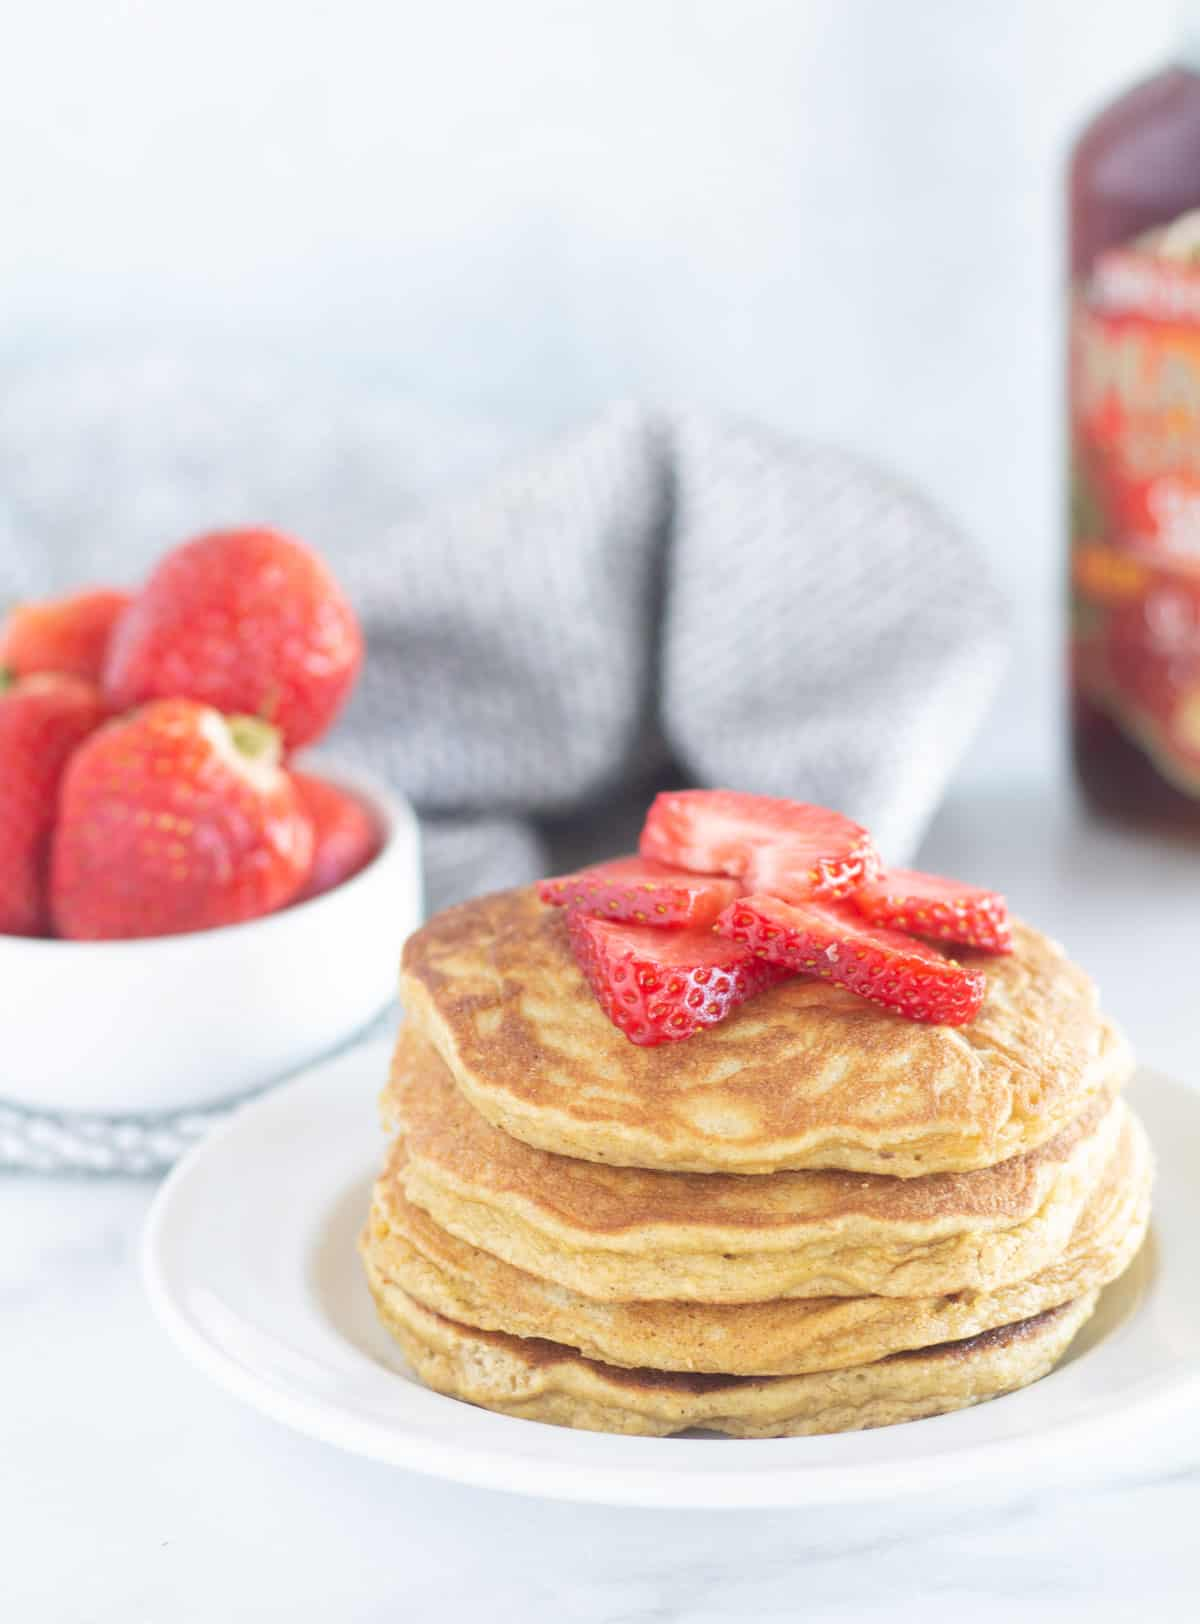 pancakes on white plate with strawberries